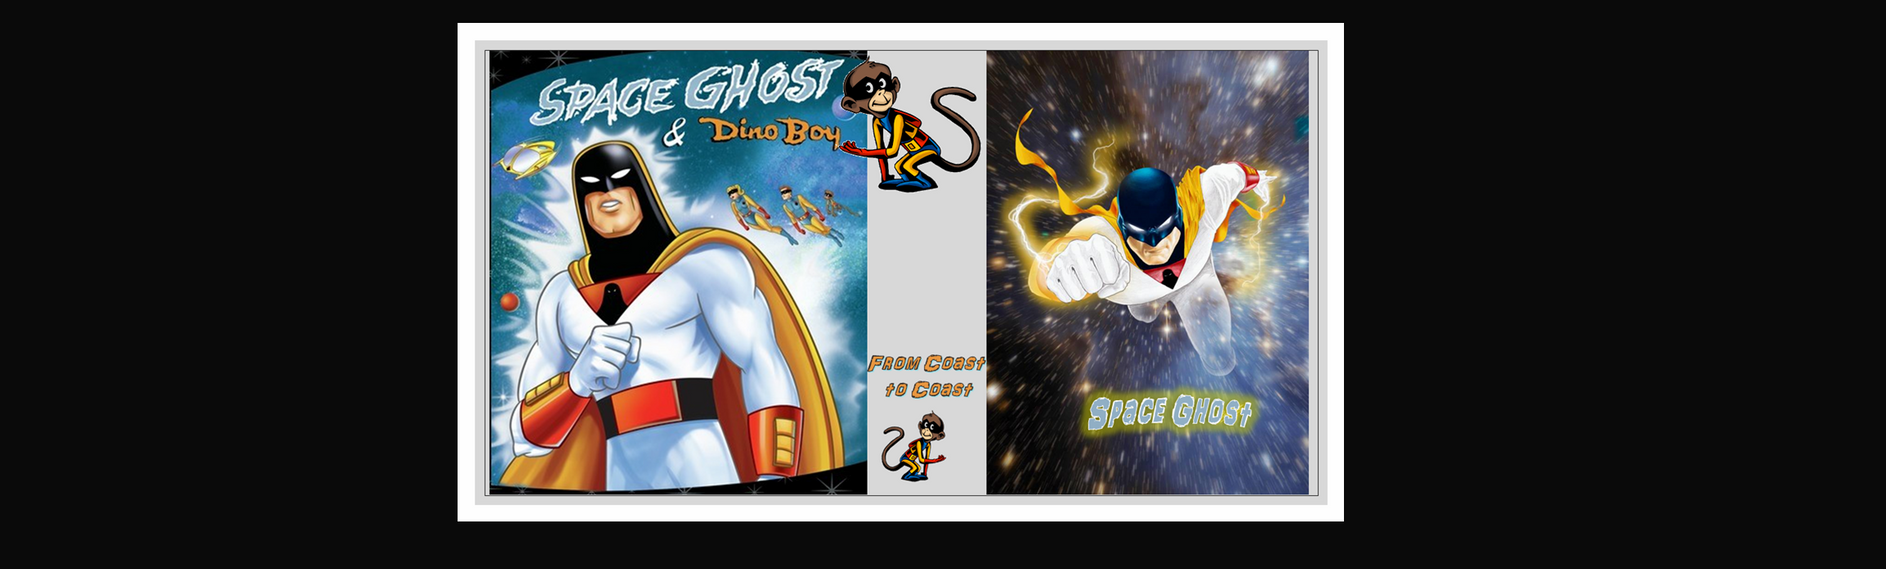 space ghost 2.png